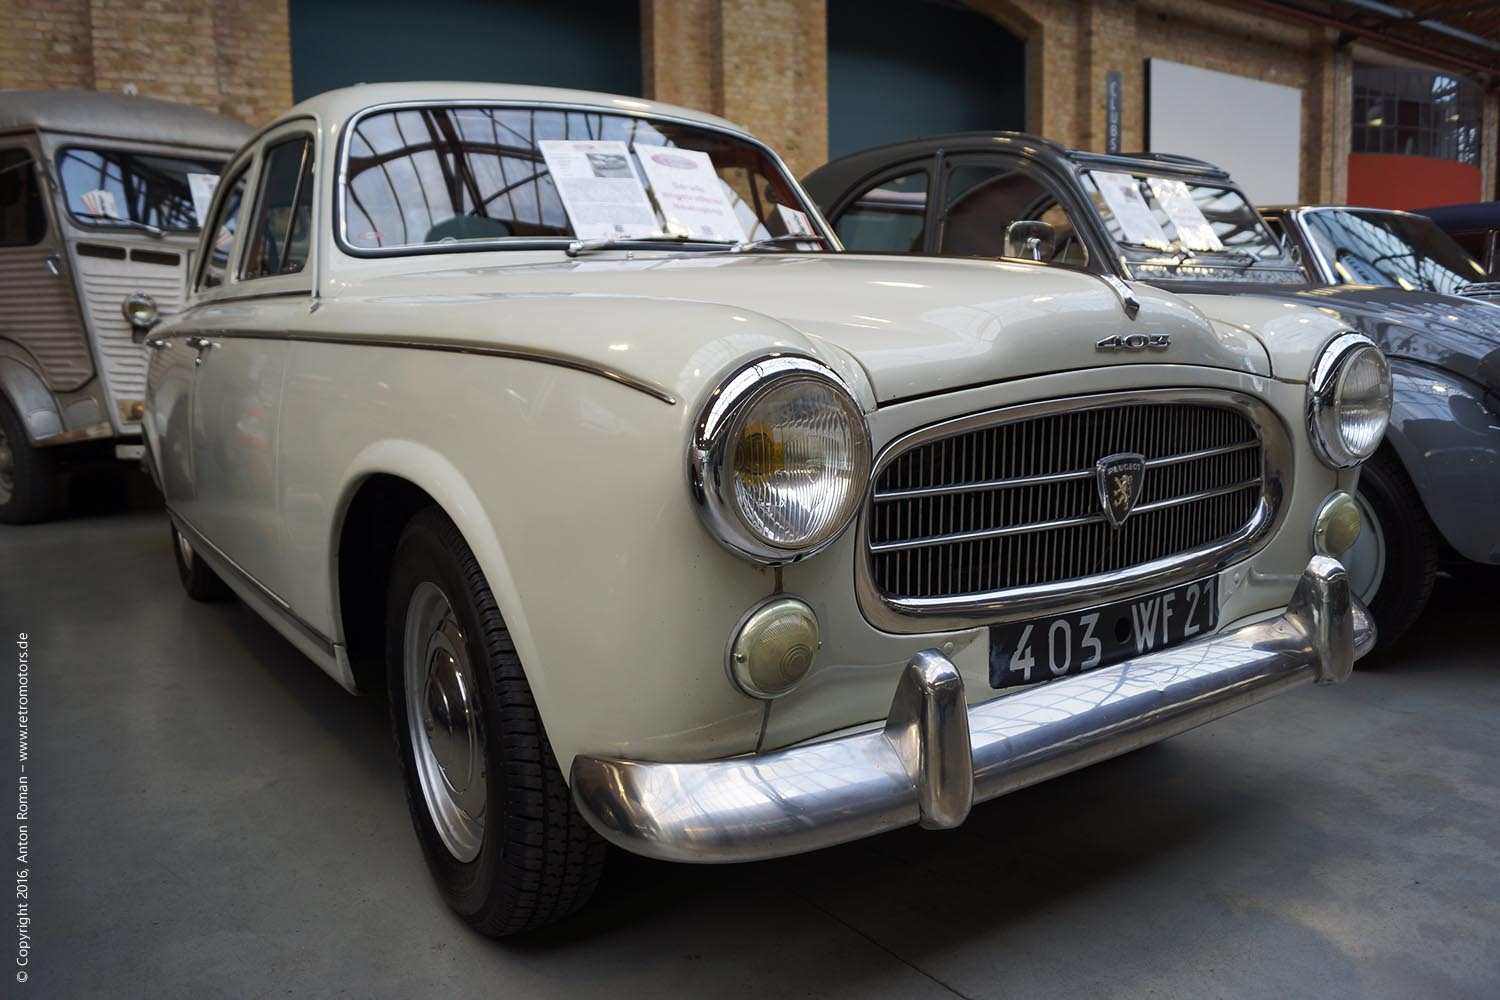 1965 Peugeot 403 Grand Luxe 1500